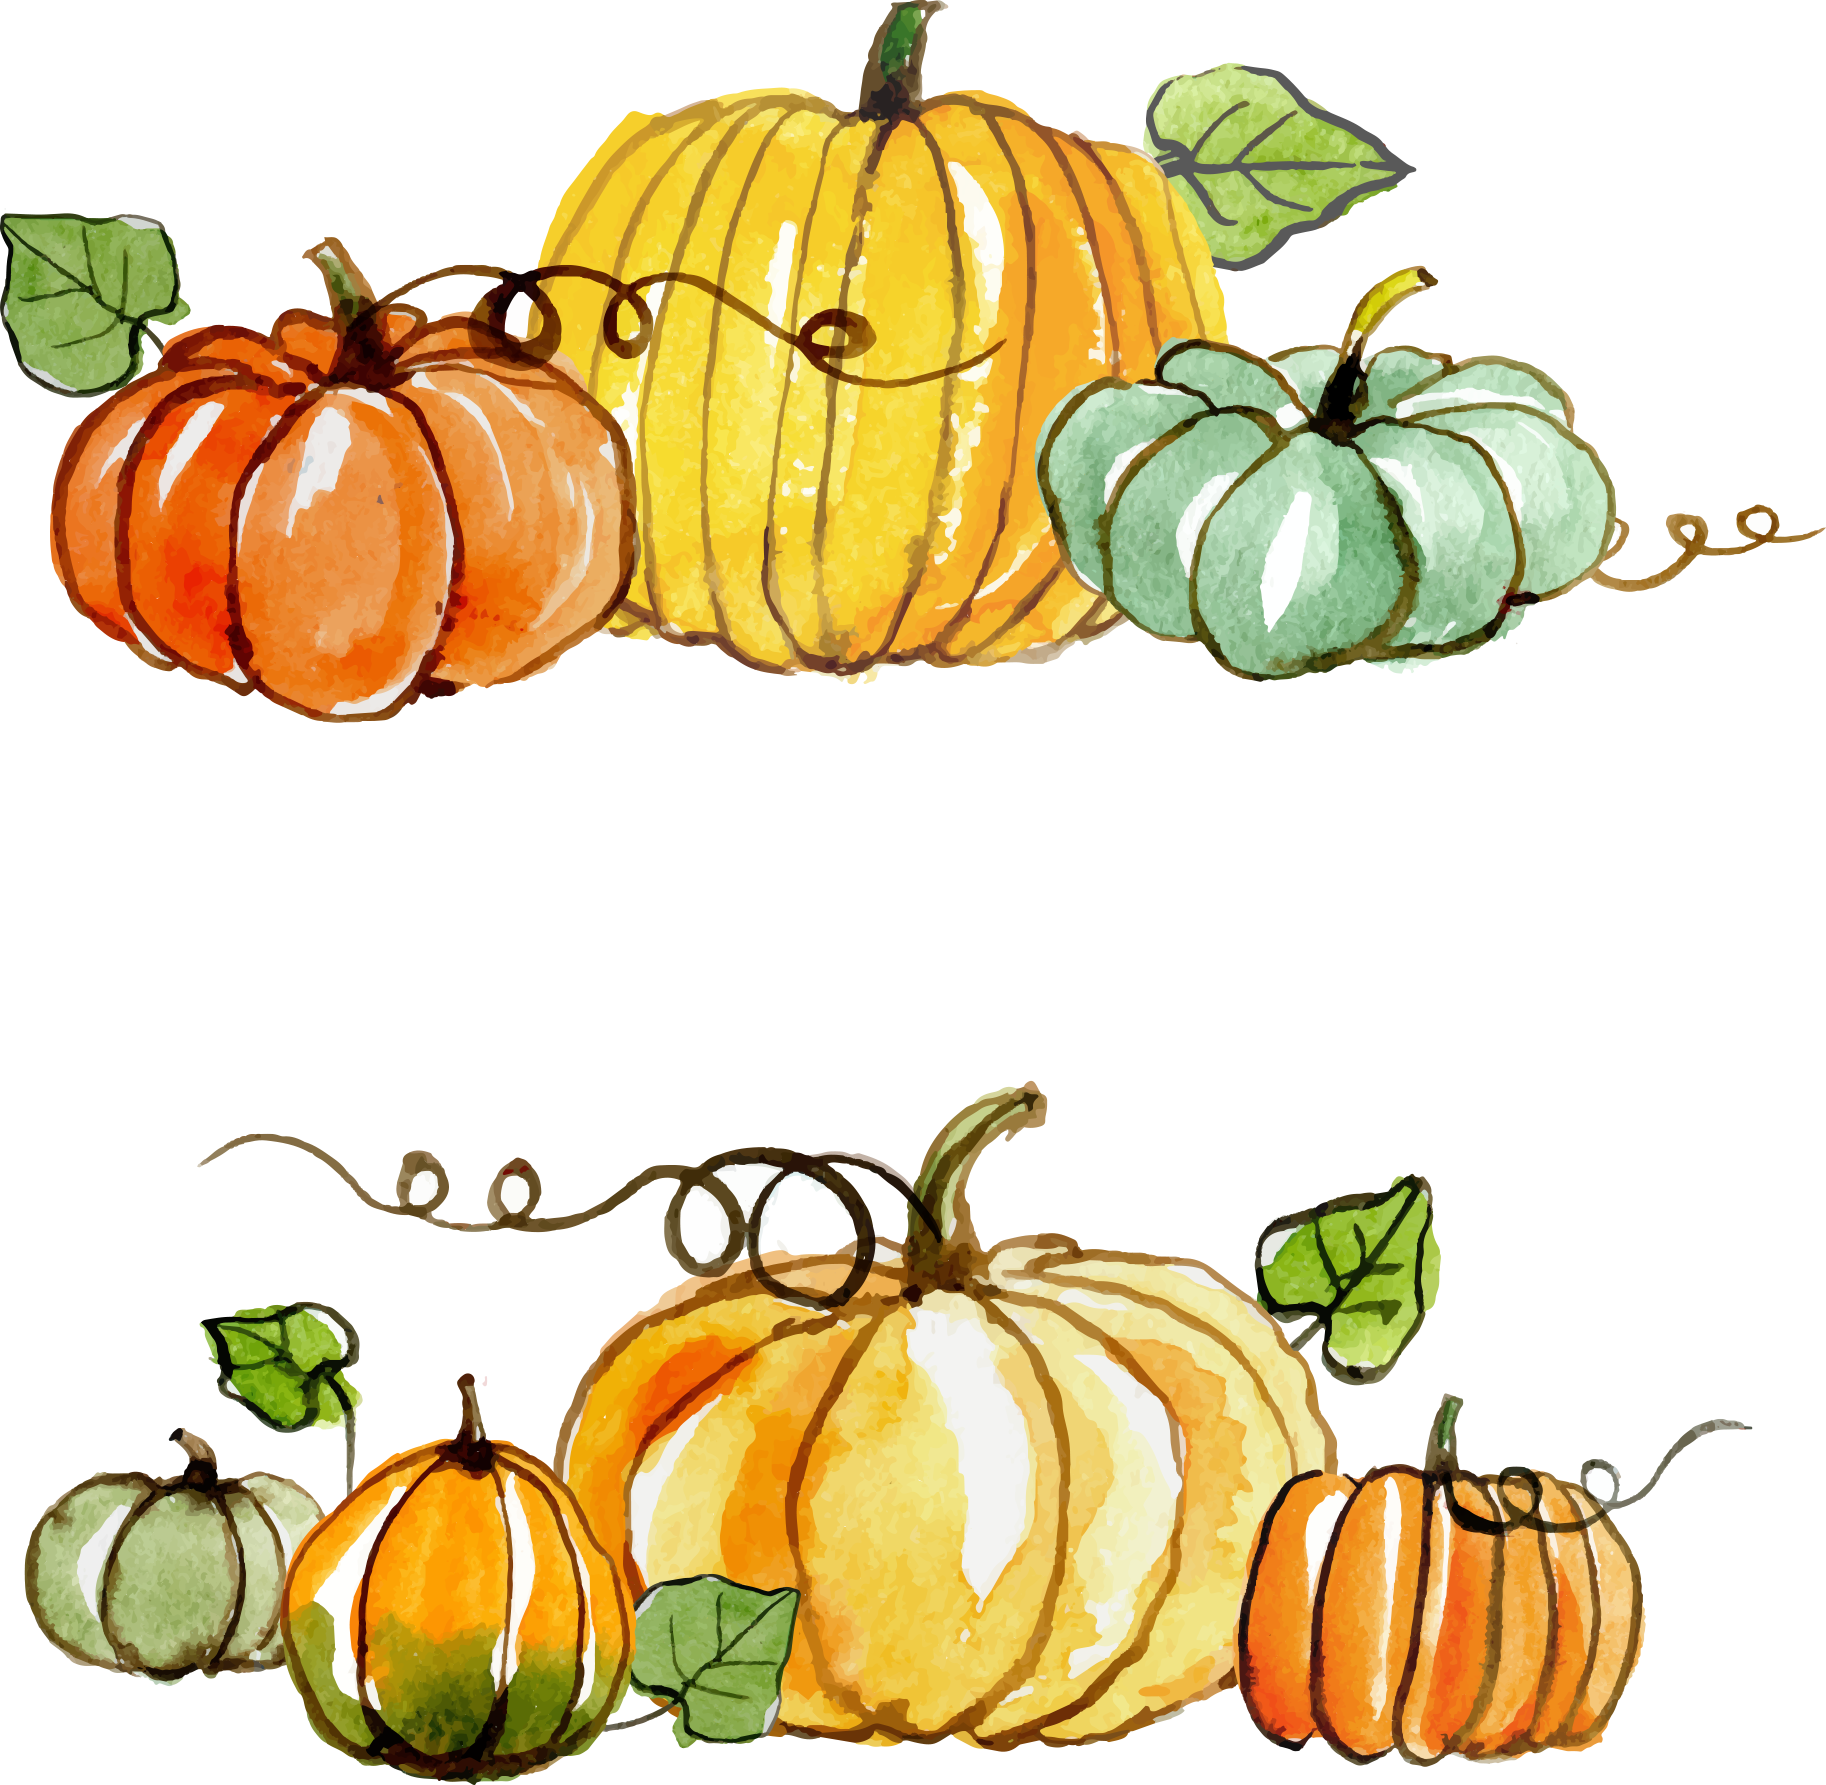 Pumpkin painting clipart vector freeuse download Thanksgiving Gratitude Gift Clip art - Thanksgiving pumpkin painted ... vector freeuse download